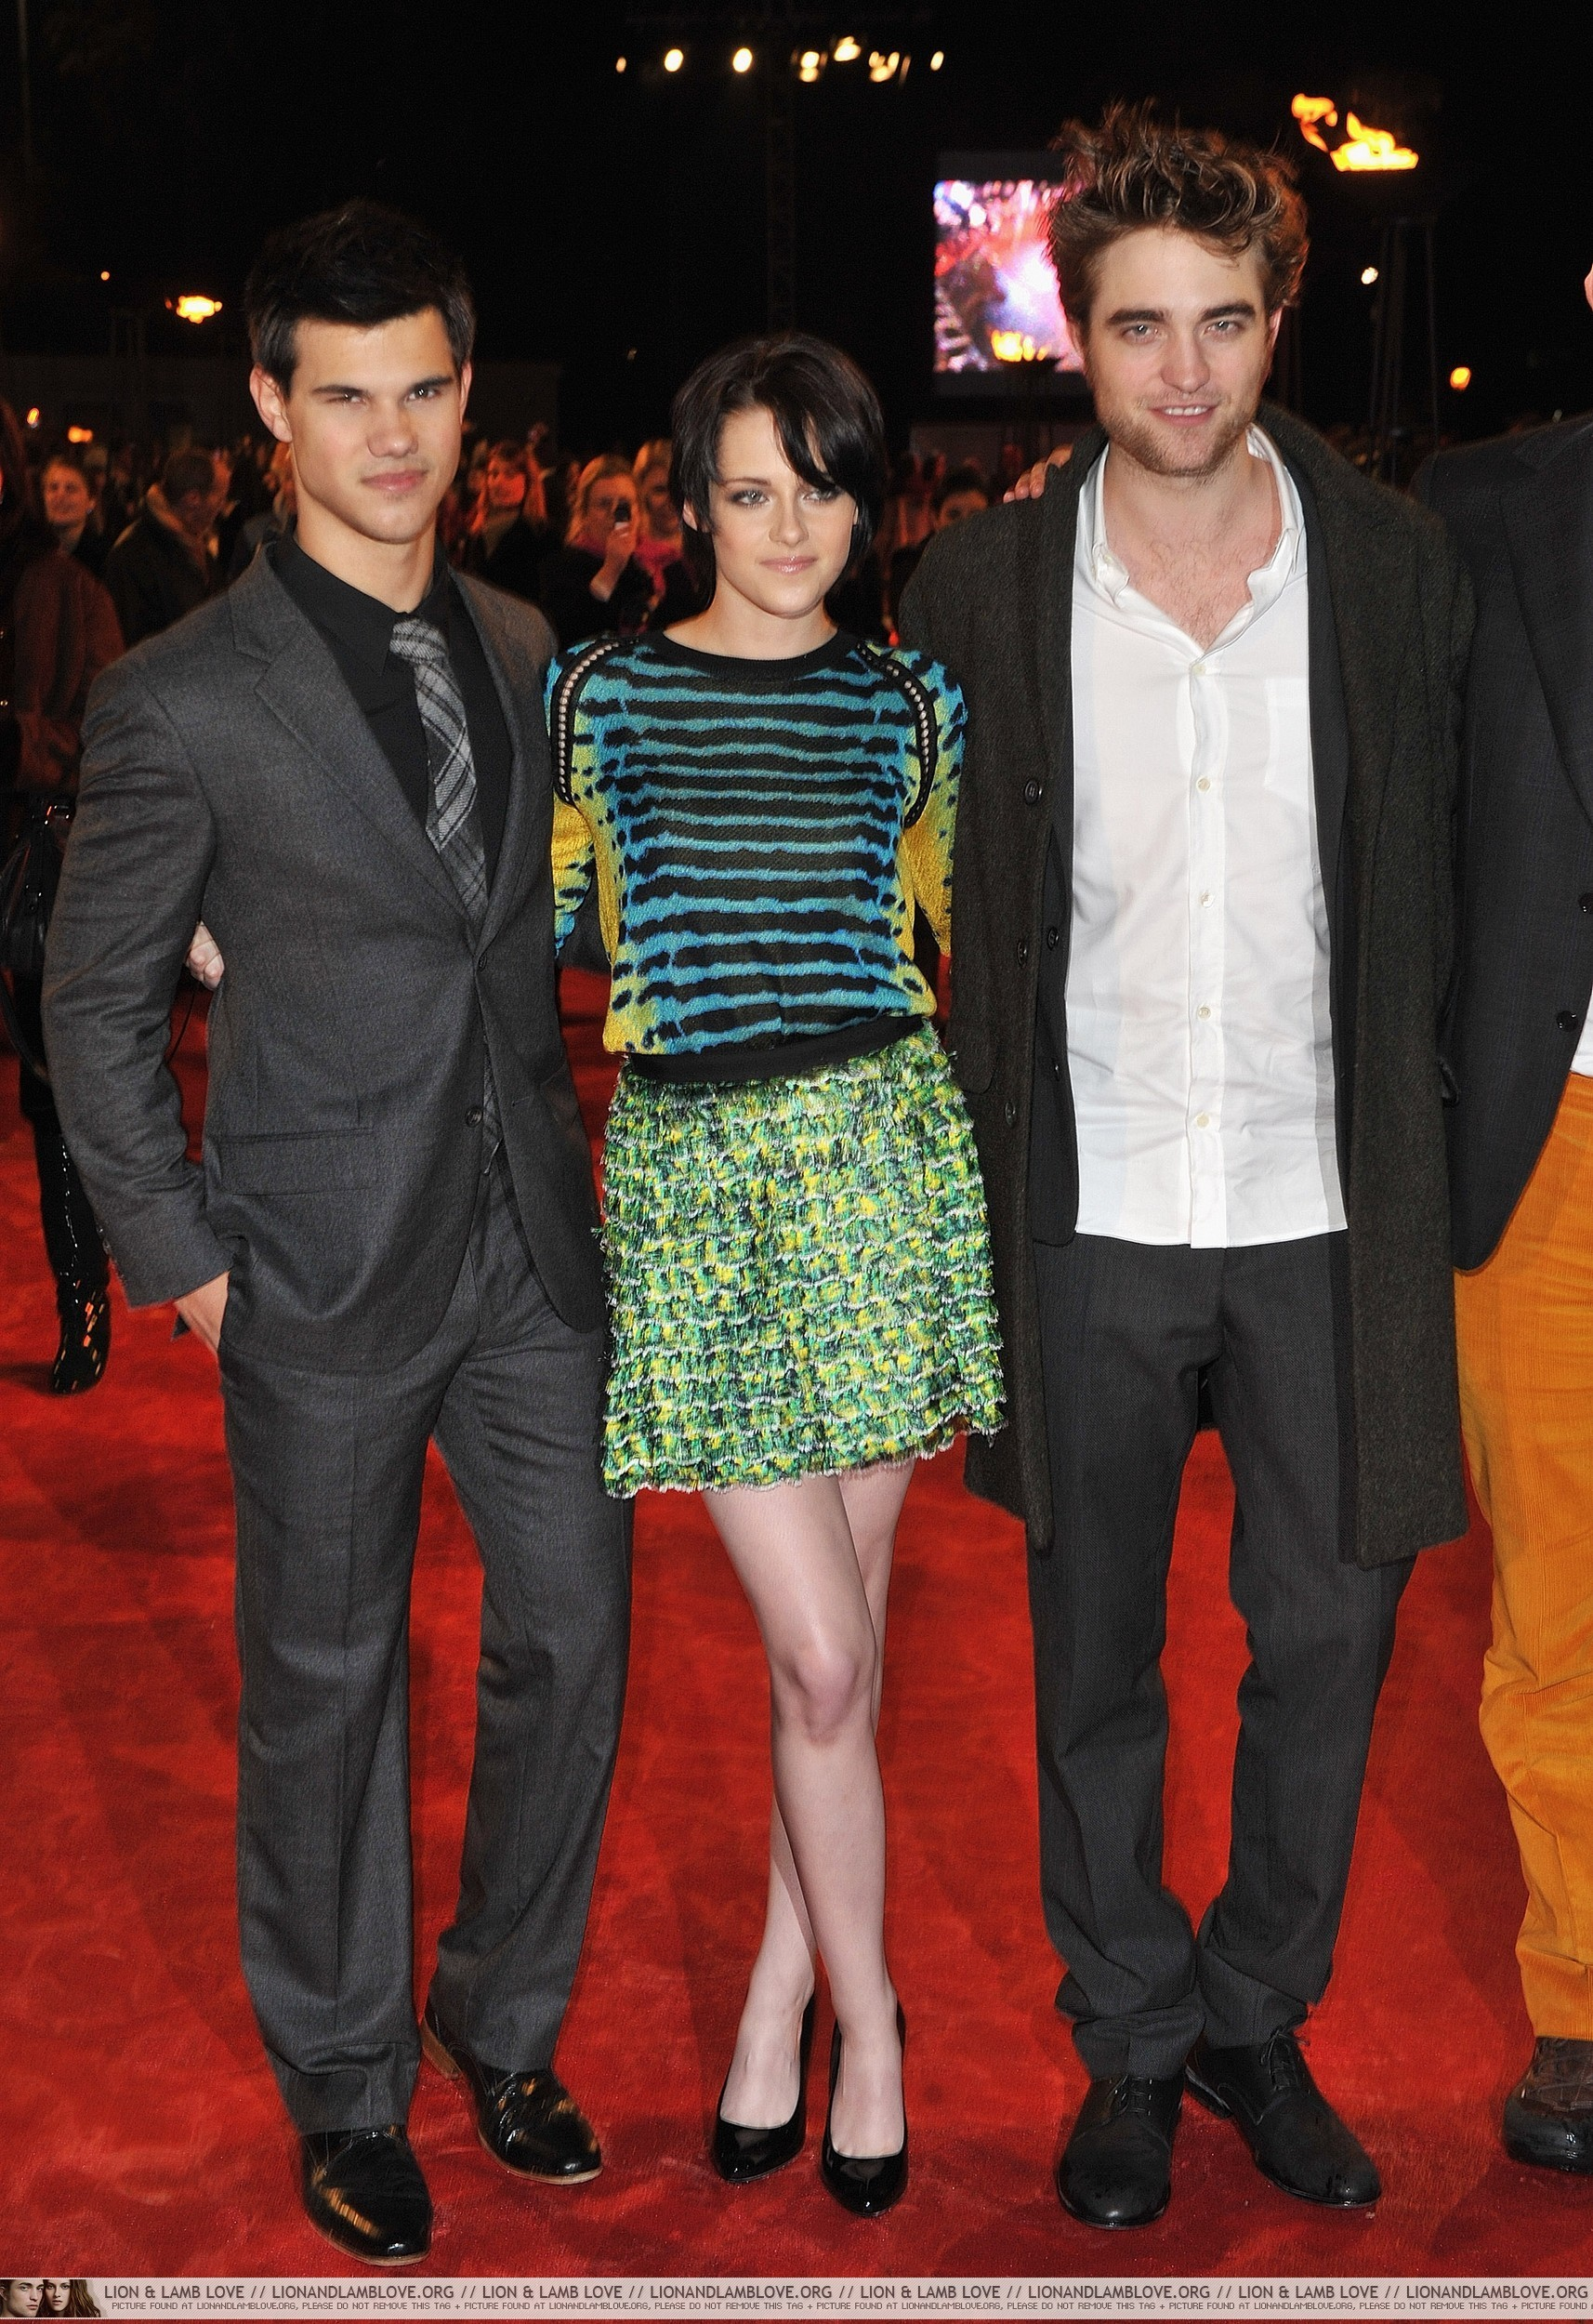 http://images2.fanpop.com/image/photos/9000000/London-Red-Carpet-Robsten-and-Taylor-twilight-series-9013840-1714-2500.jpg